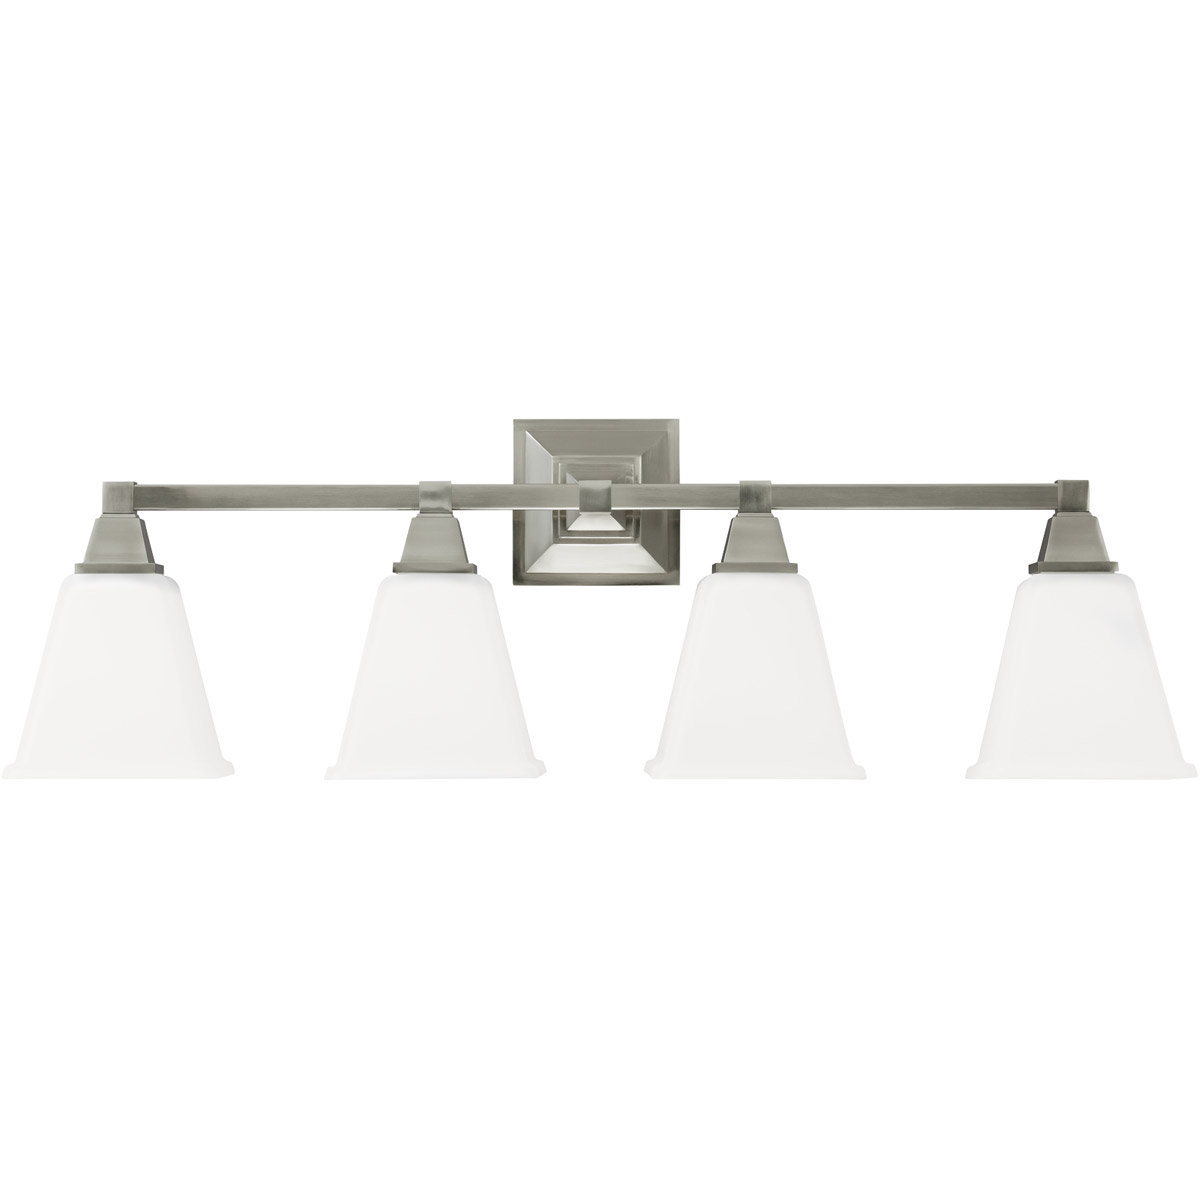 Sea Gull Denhelm 4 Light Bath Vanity in Brushed Nickel 4450404-962